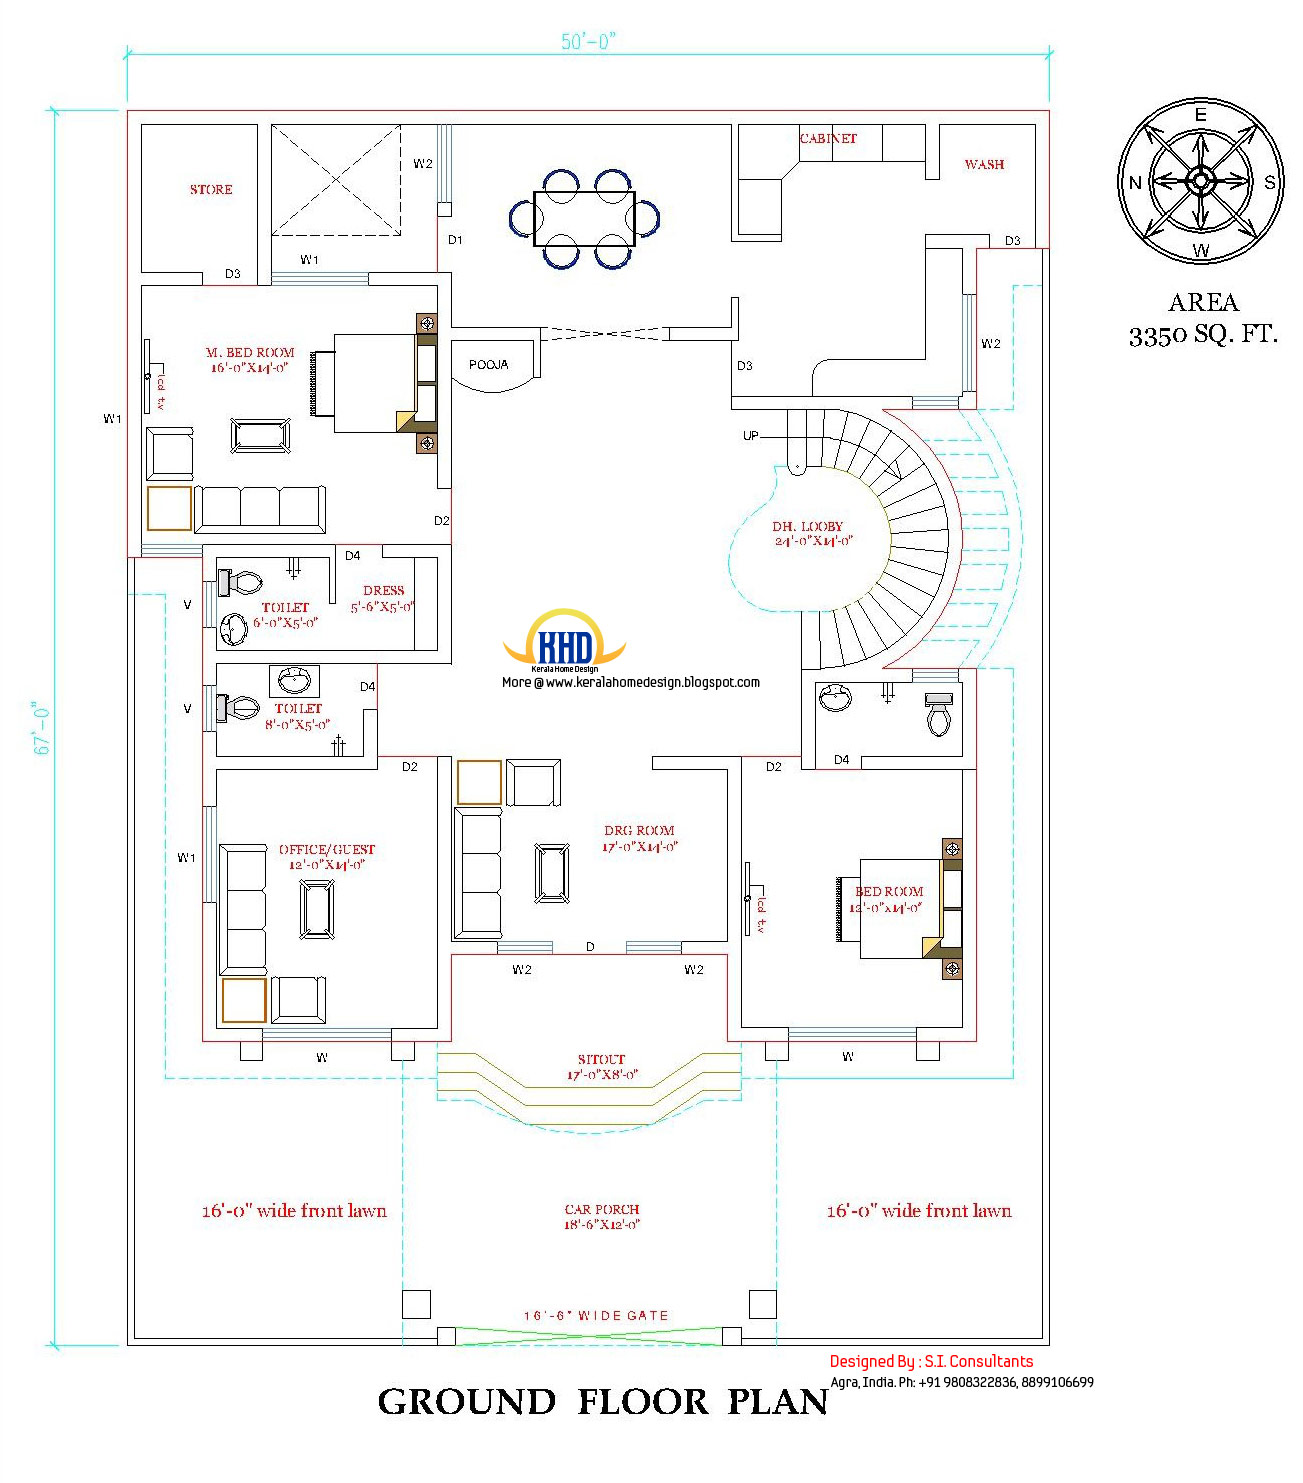 Home Designs October 2012: 3350 Sq. Ft. Beautiful Double Storied House With Plan